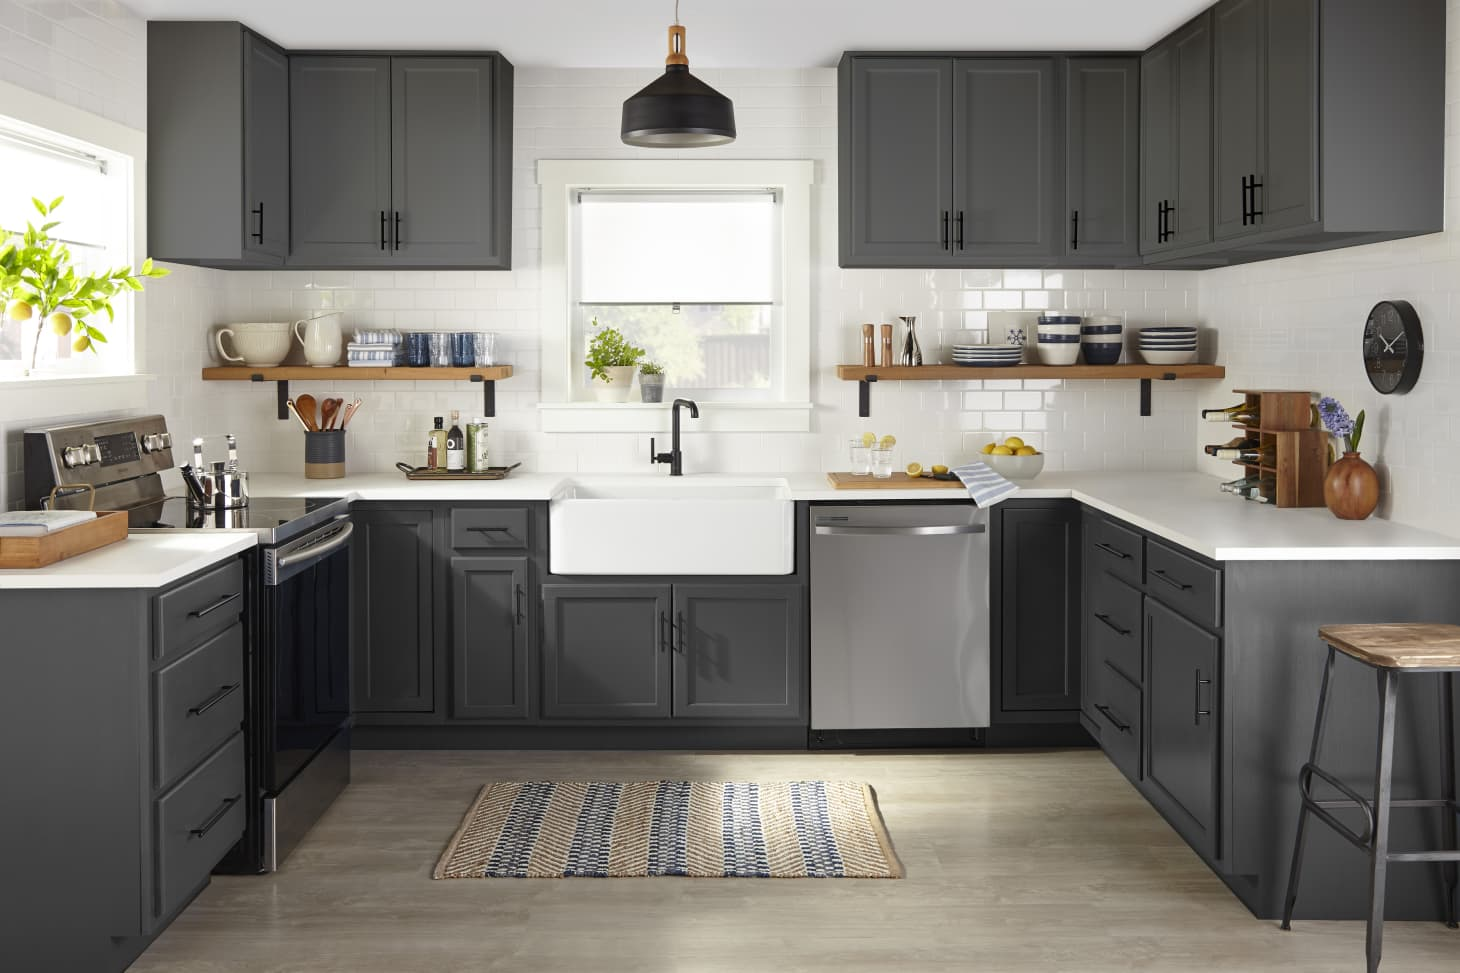 Here's What You Need to Know About Painting Your Cabinets